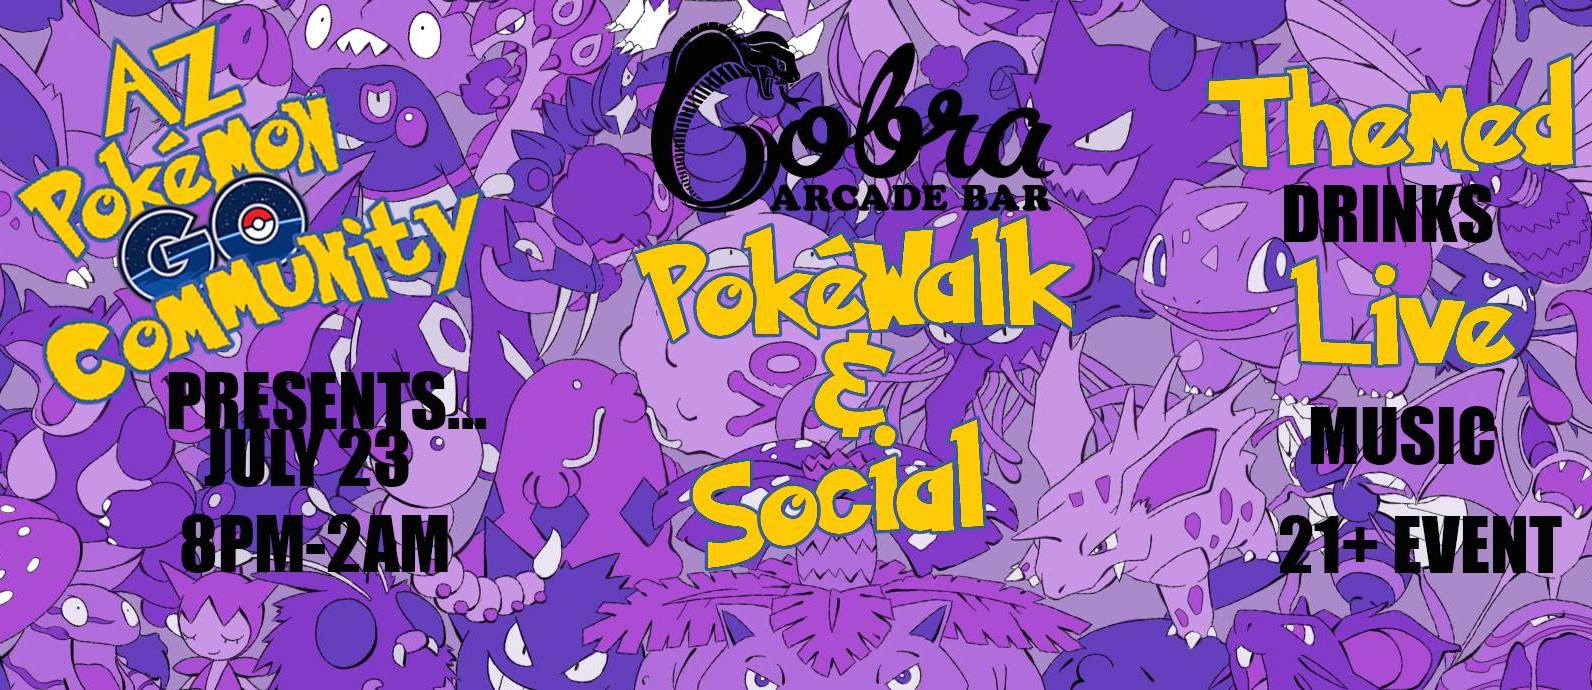 Just Announced: DJ gig this Saturday at Cobra Arcade (Pokemon GO Party)